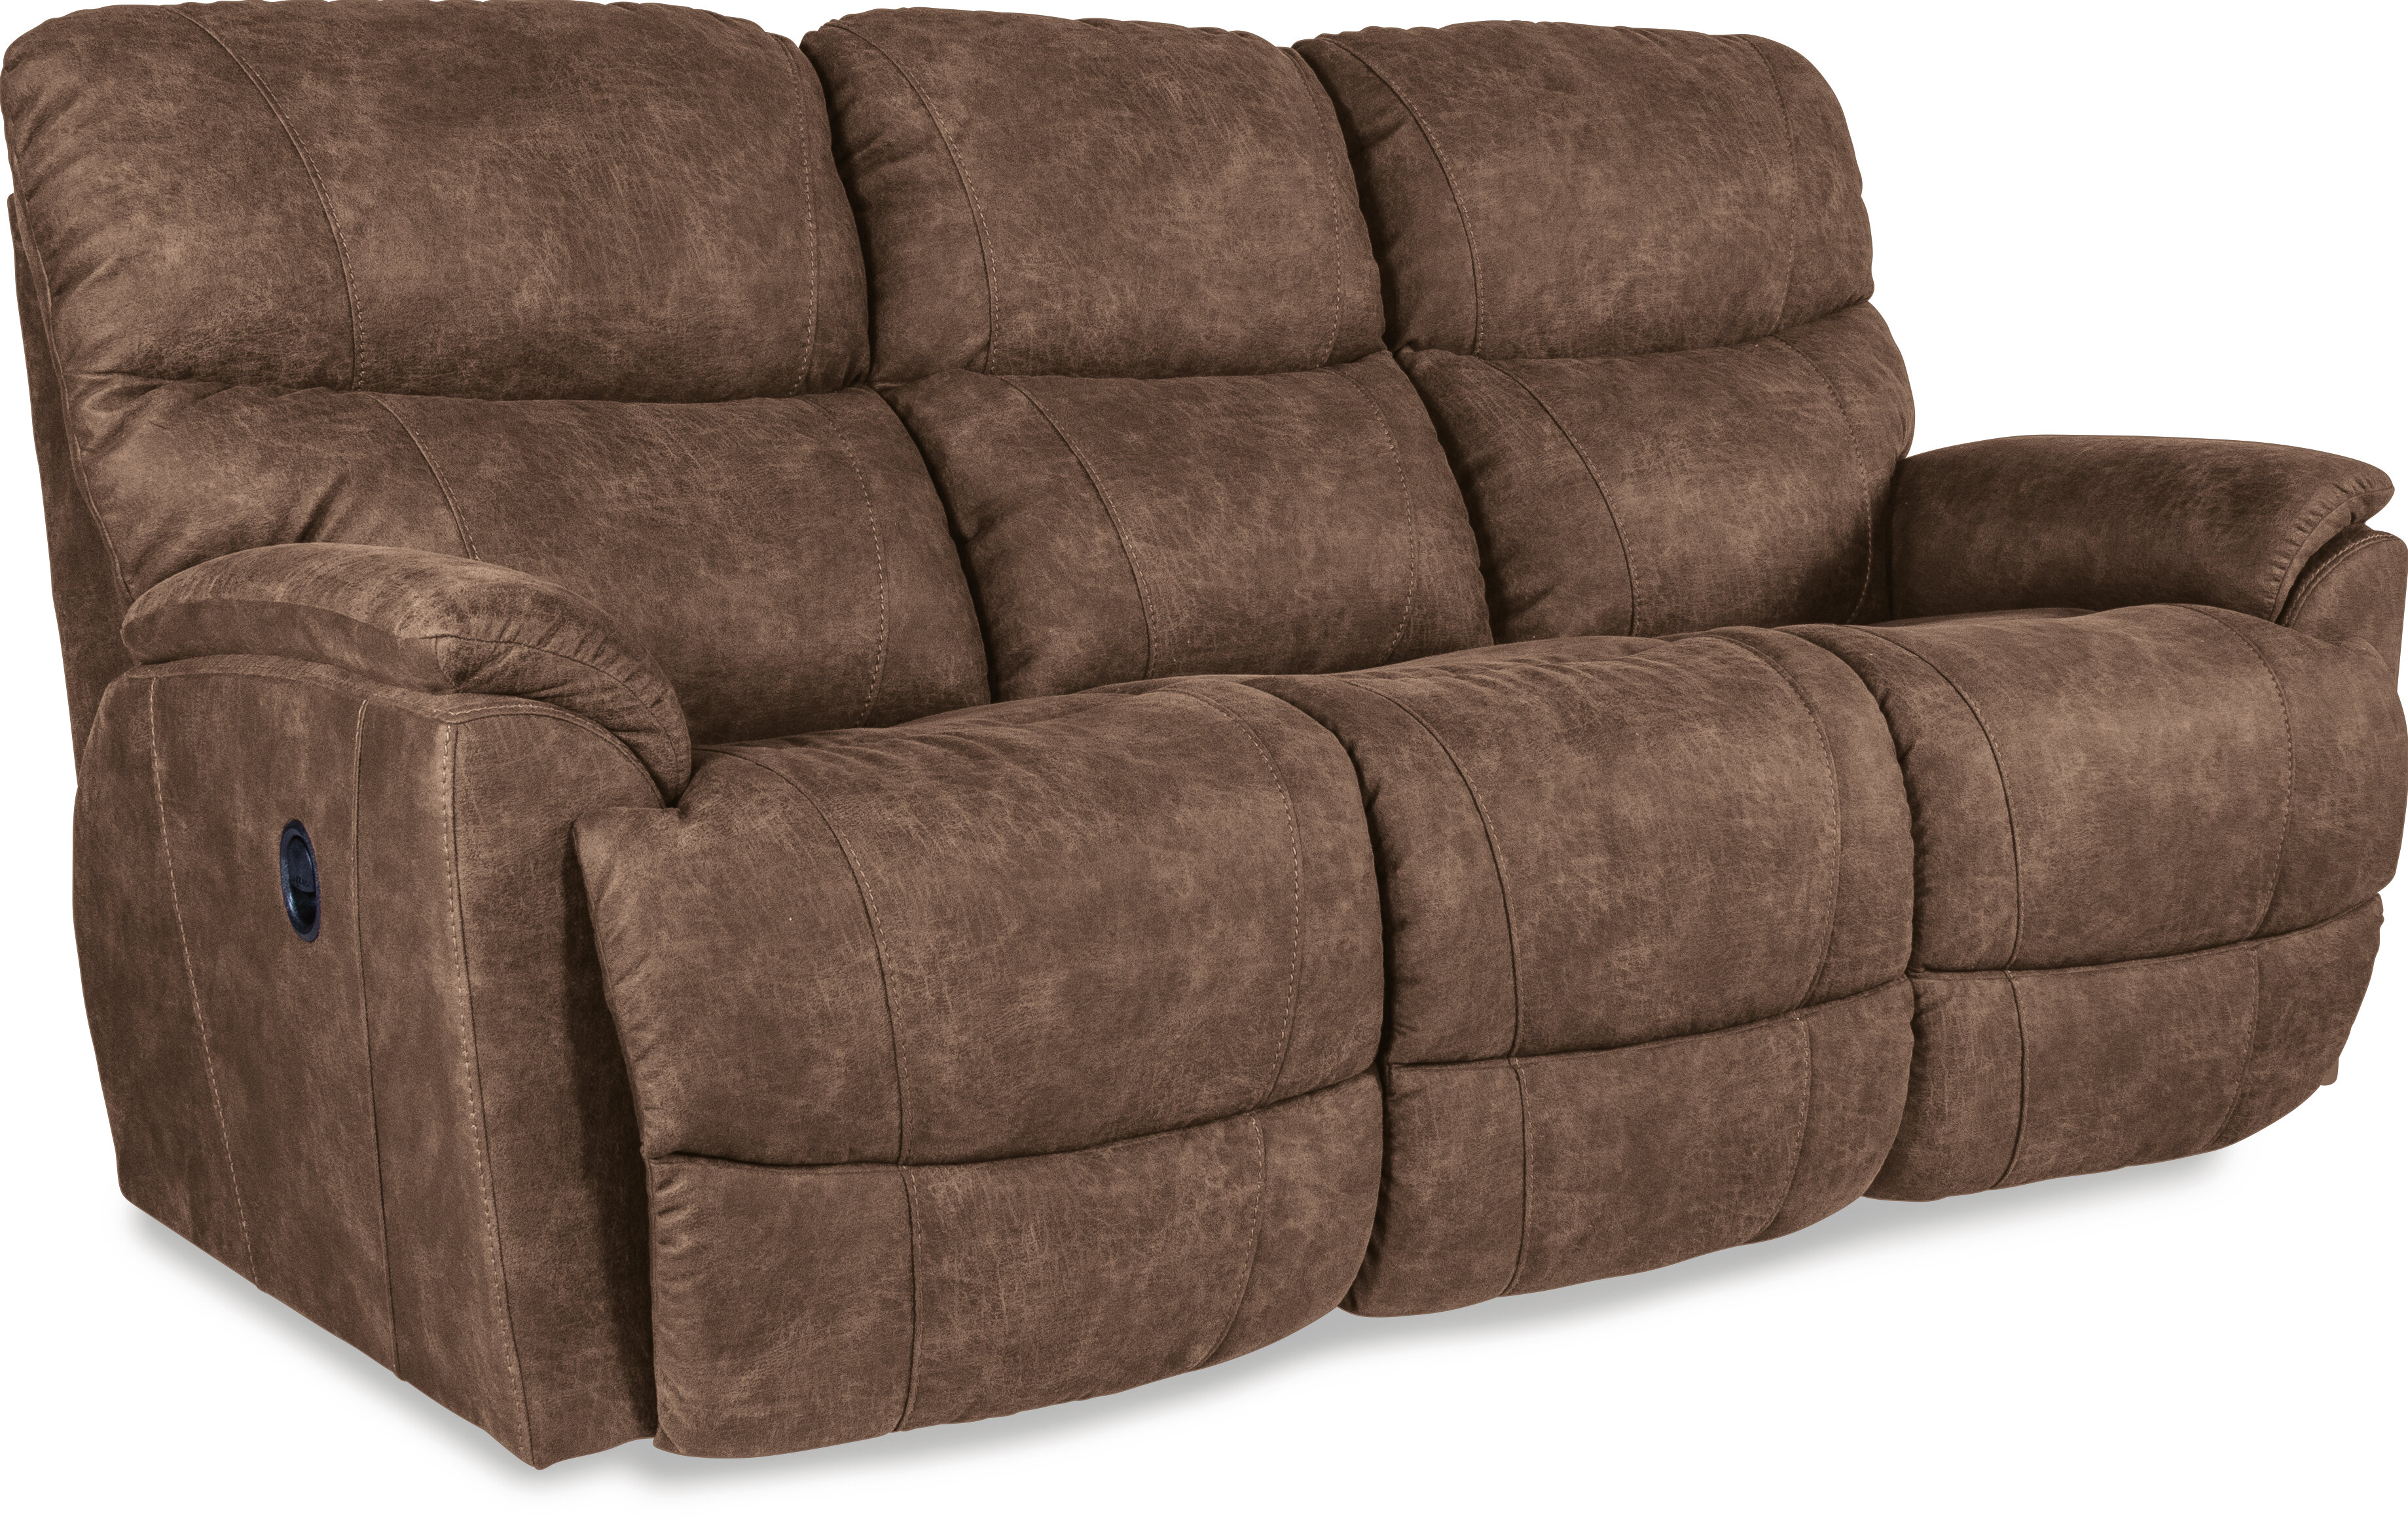 La Z Boy Trouper Reclining Sofa | Wayfair